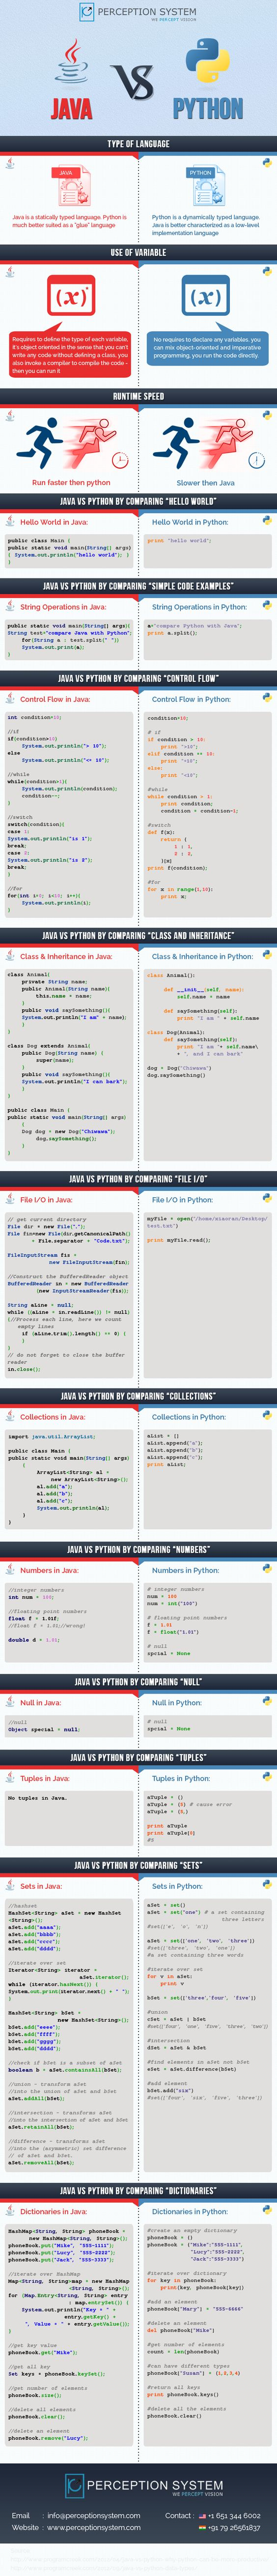 Java Vs. Python- Which Programming Language is For You?